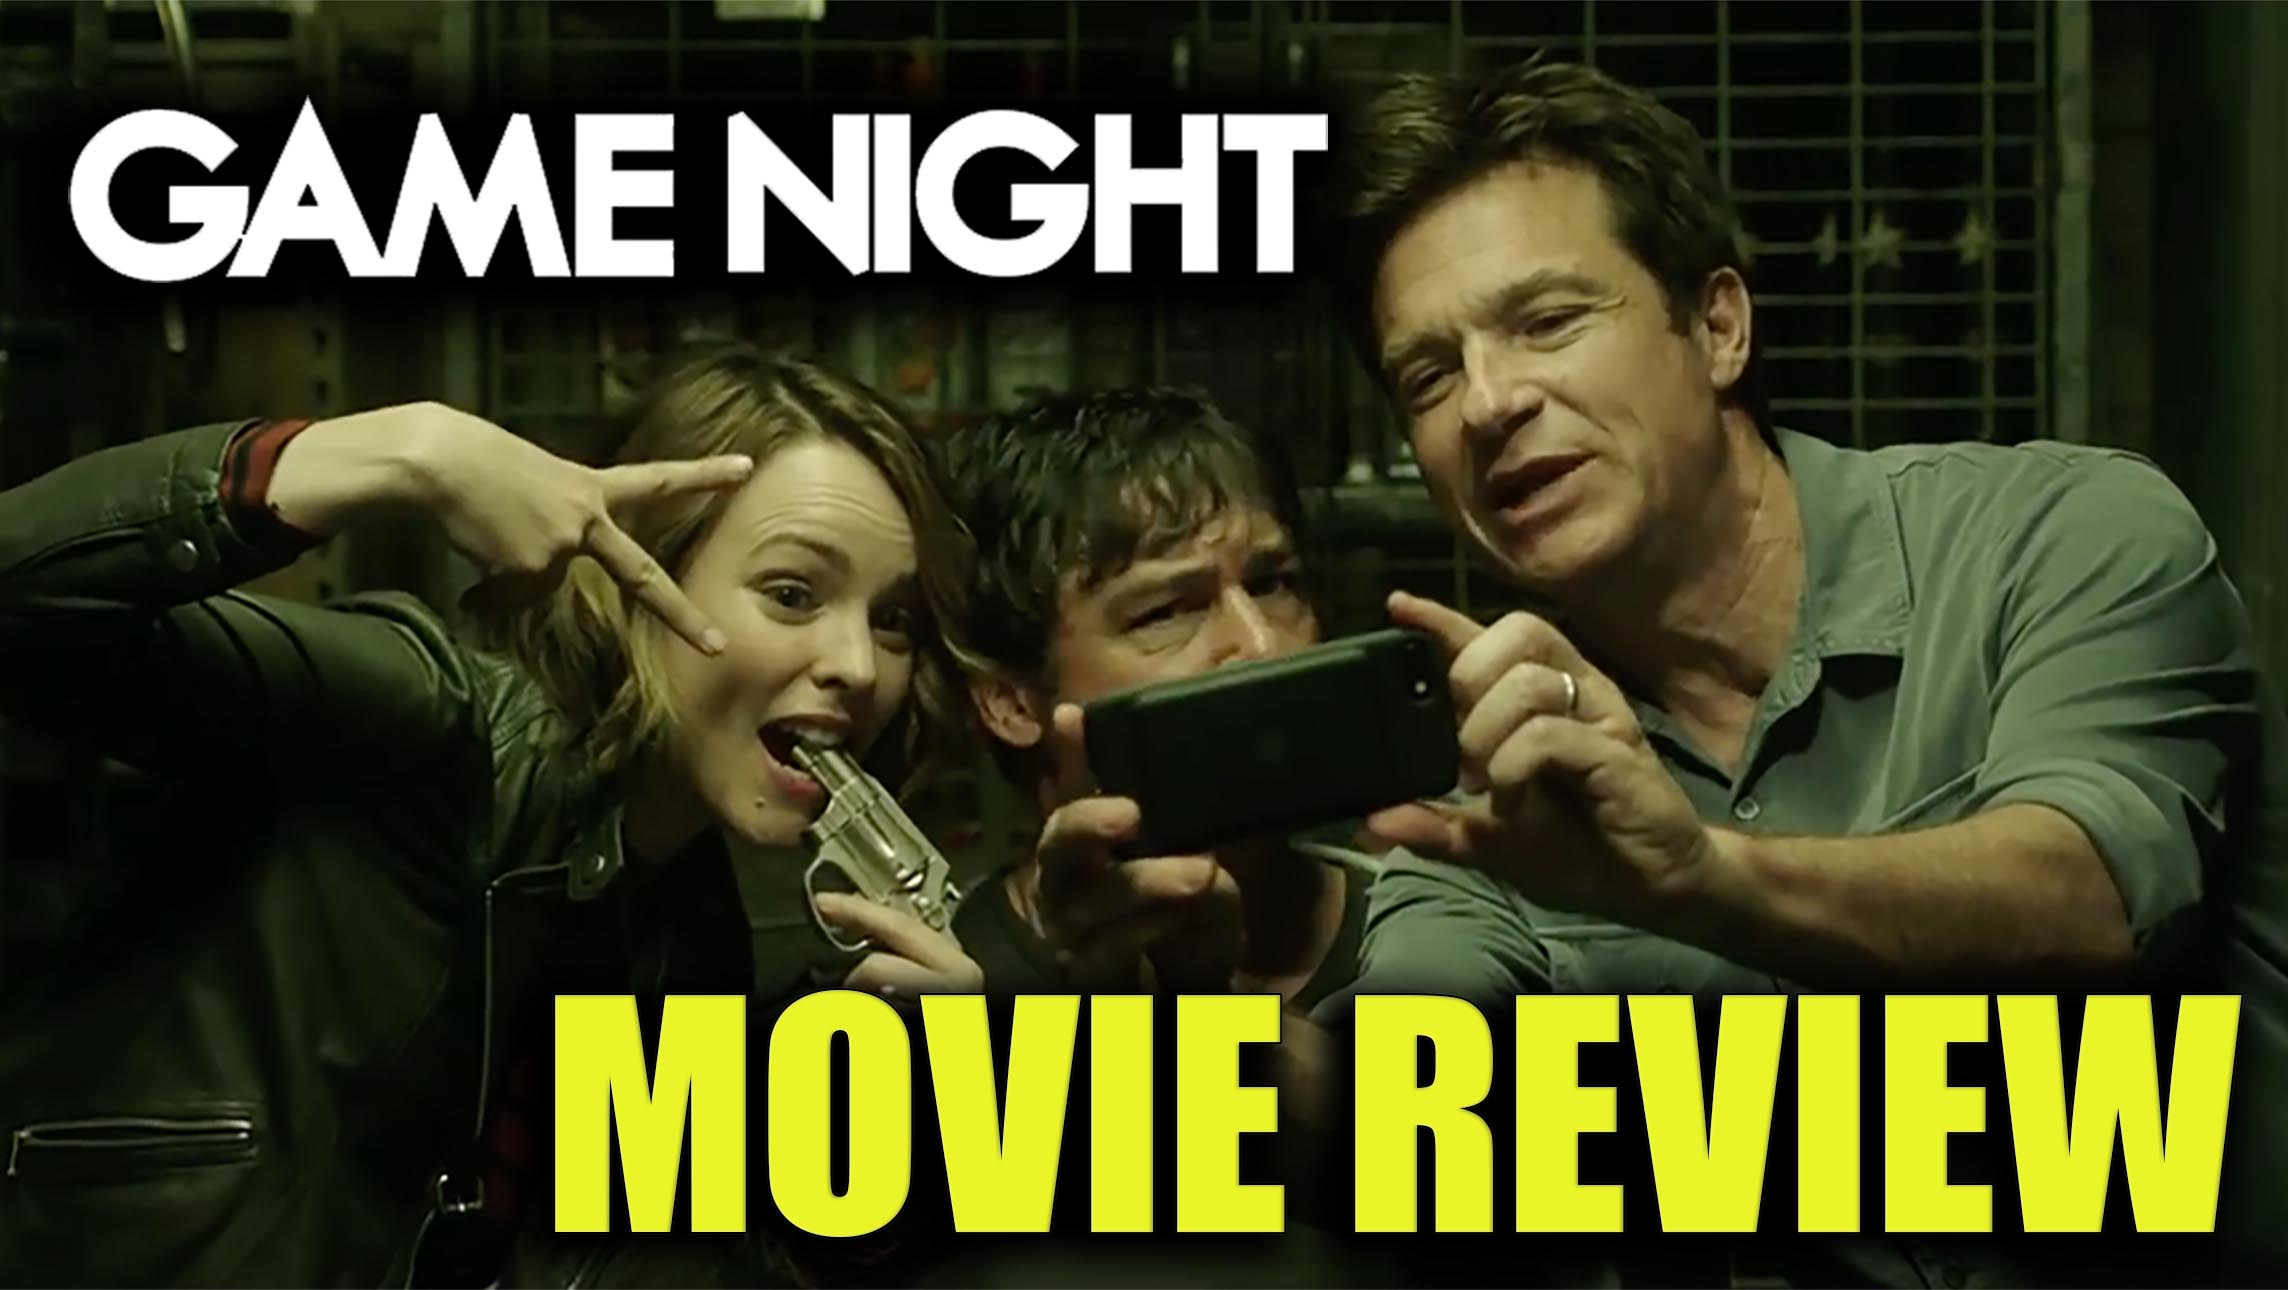 Review Game Night 2018 Littlemoviereviews